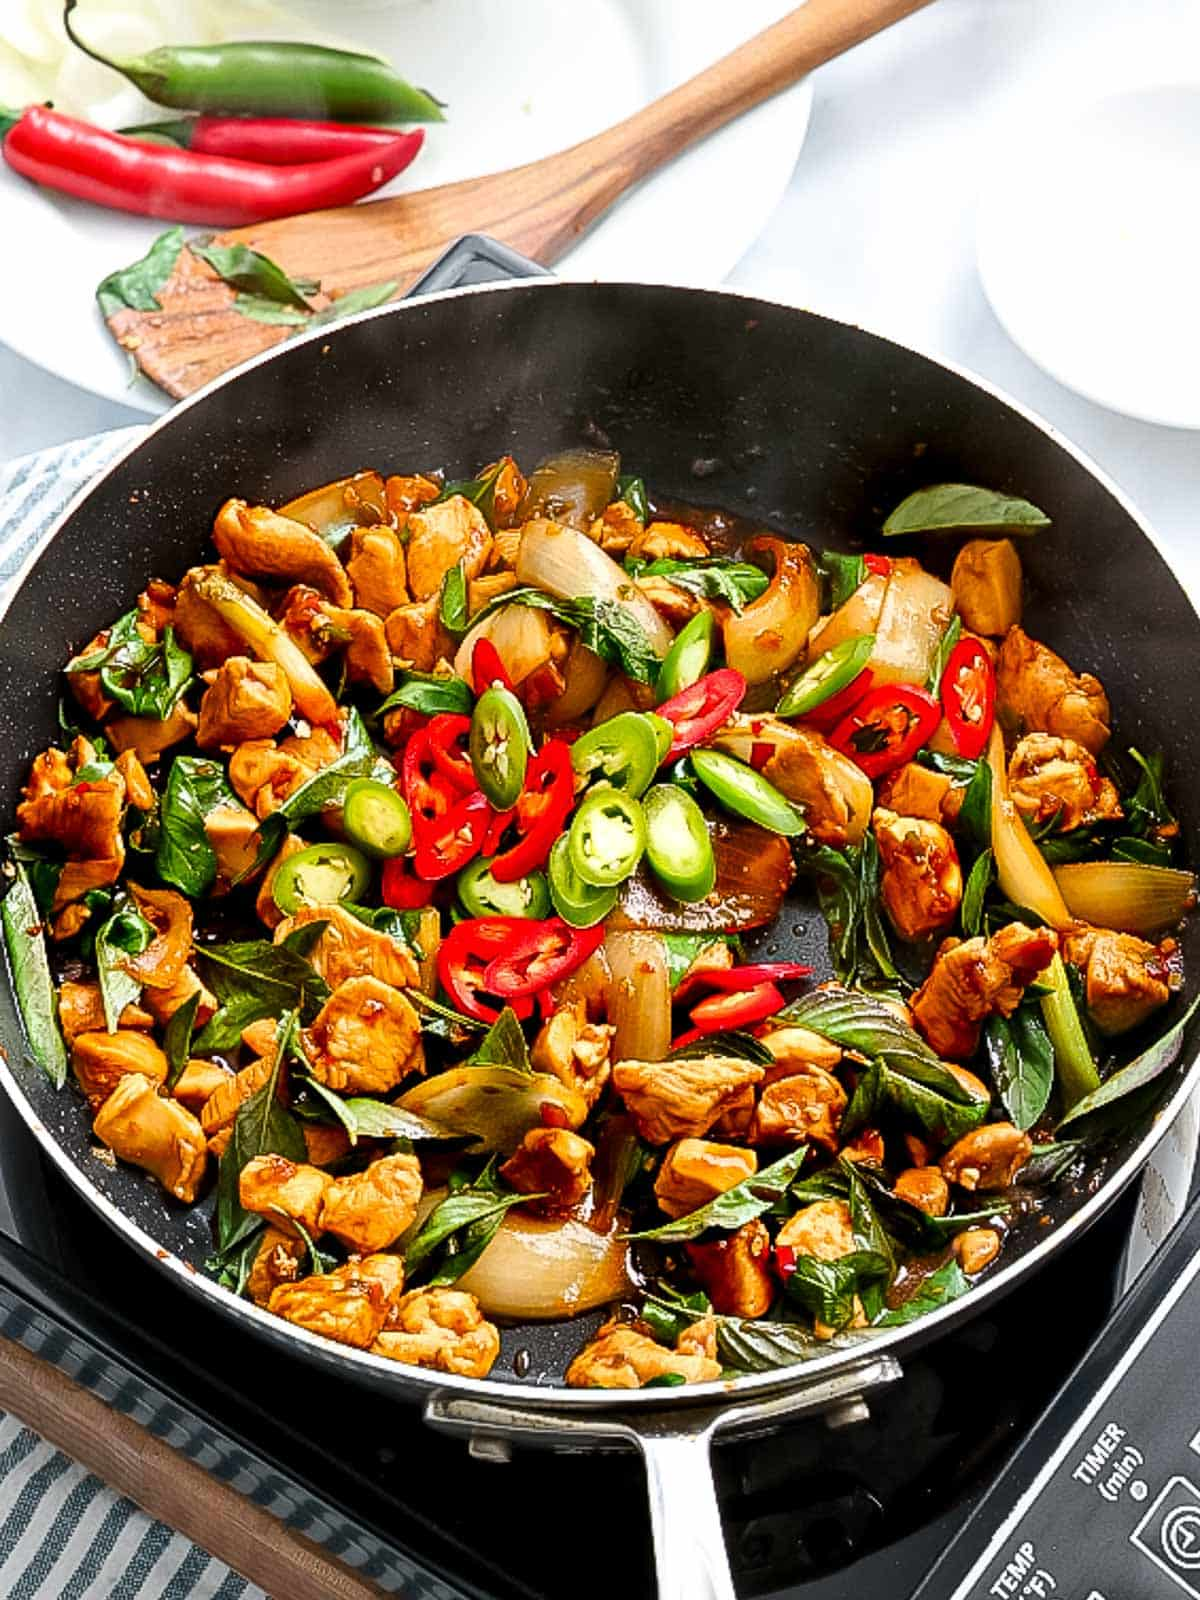 Thai basil chicken being stir fried in a pan with chili pepper slices.